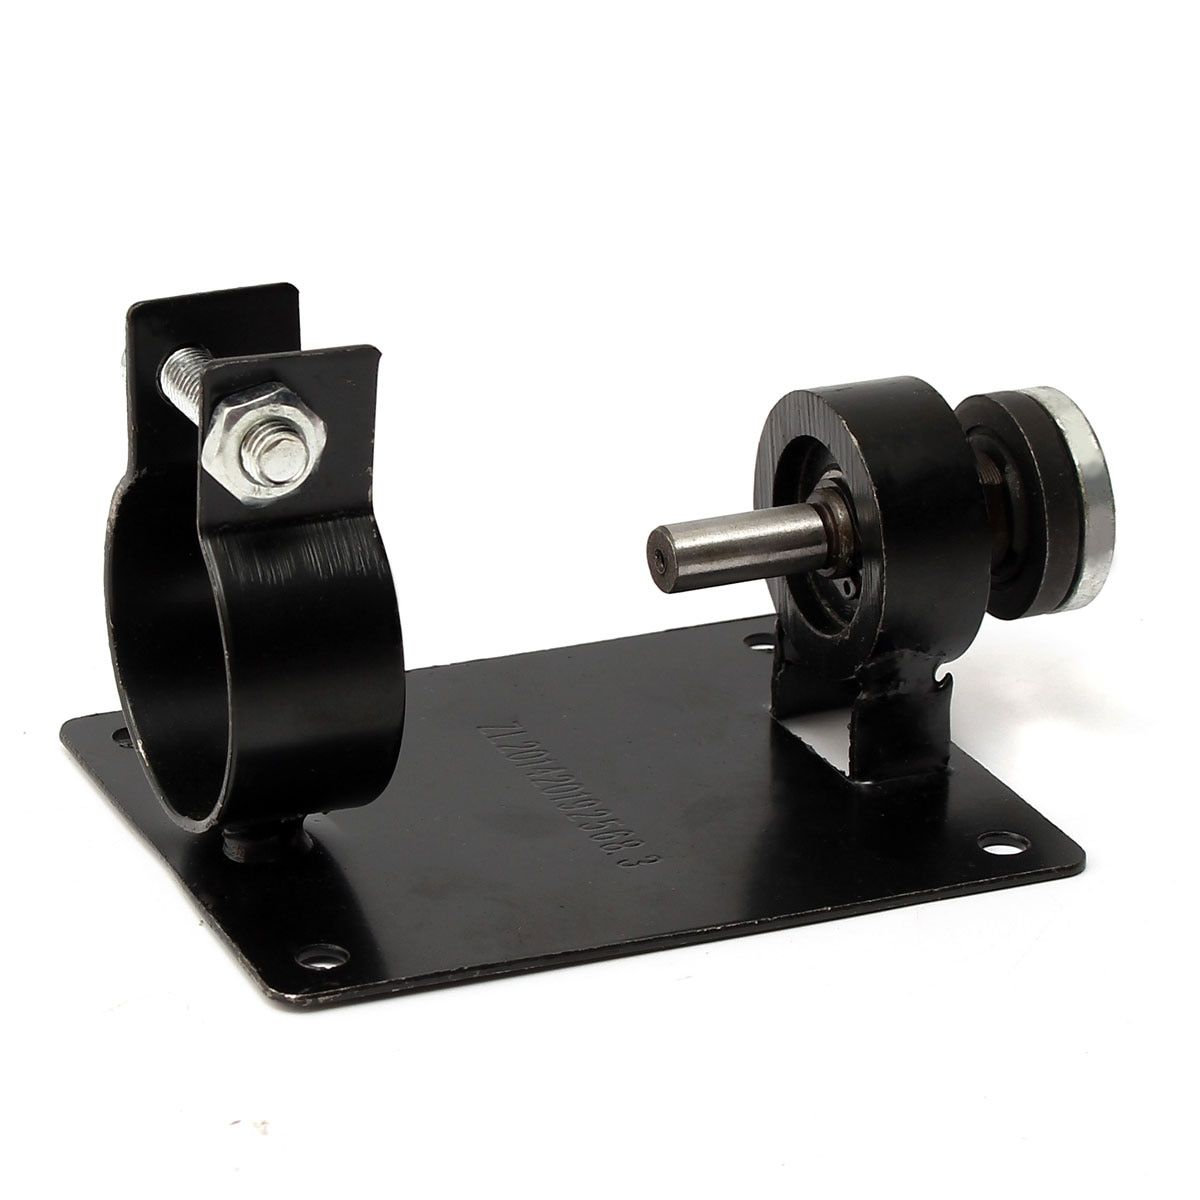 Wholesale Price 1 Set of 10/13mm Electric Drill Cutting Seat Stand Machine Bracket Rod Bar Table+2 Wrench Top Quality